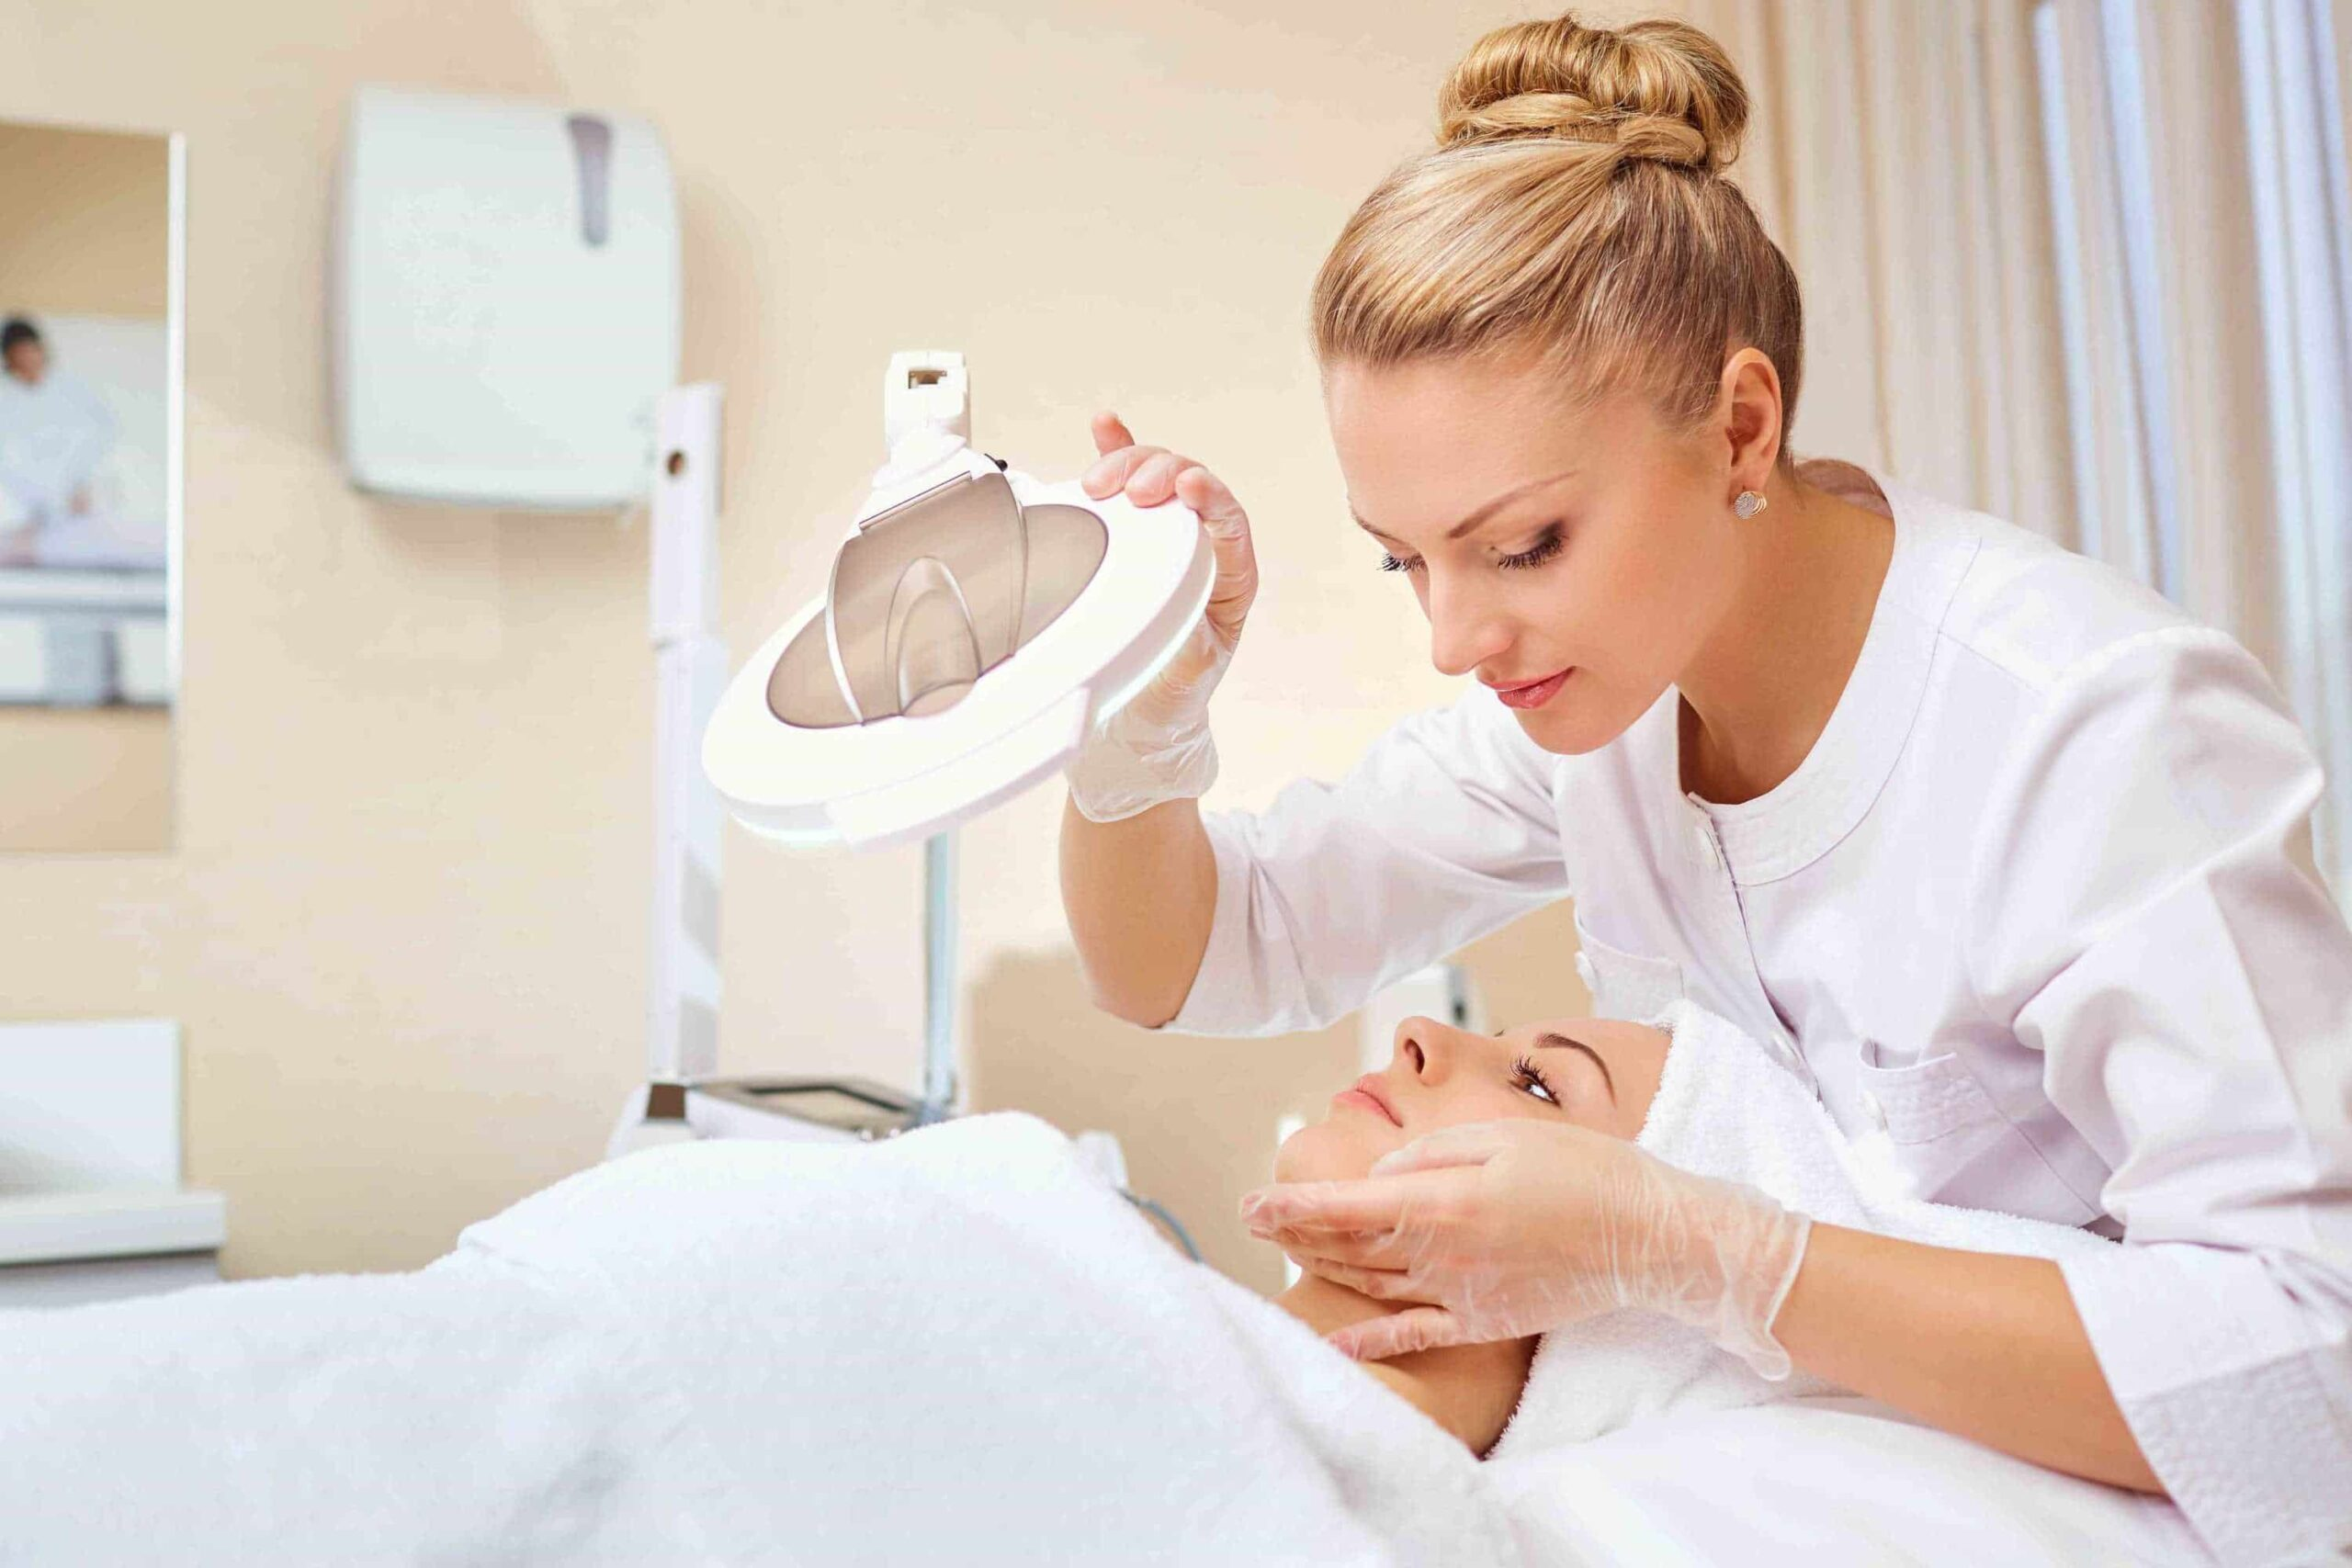 esthetic medical services